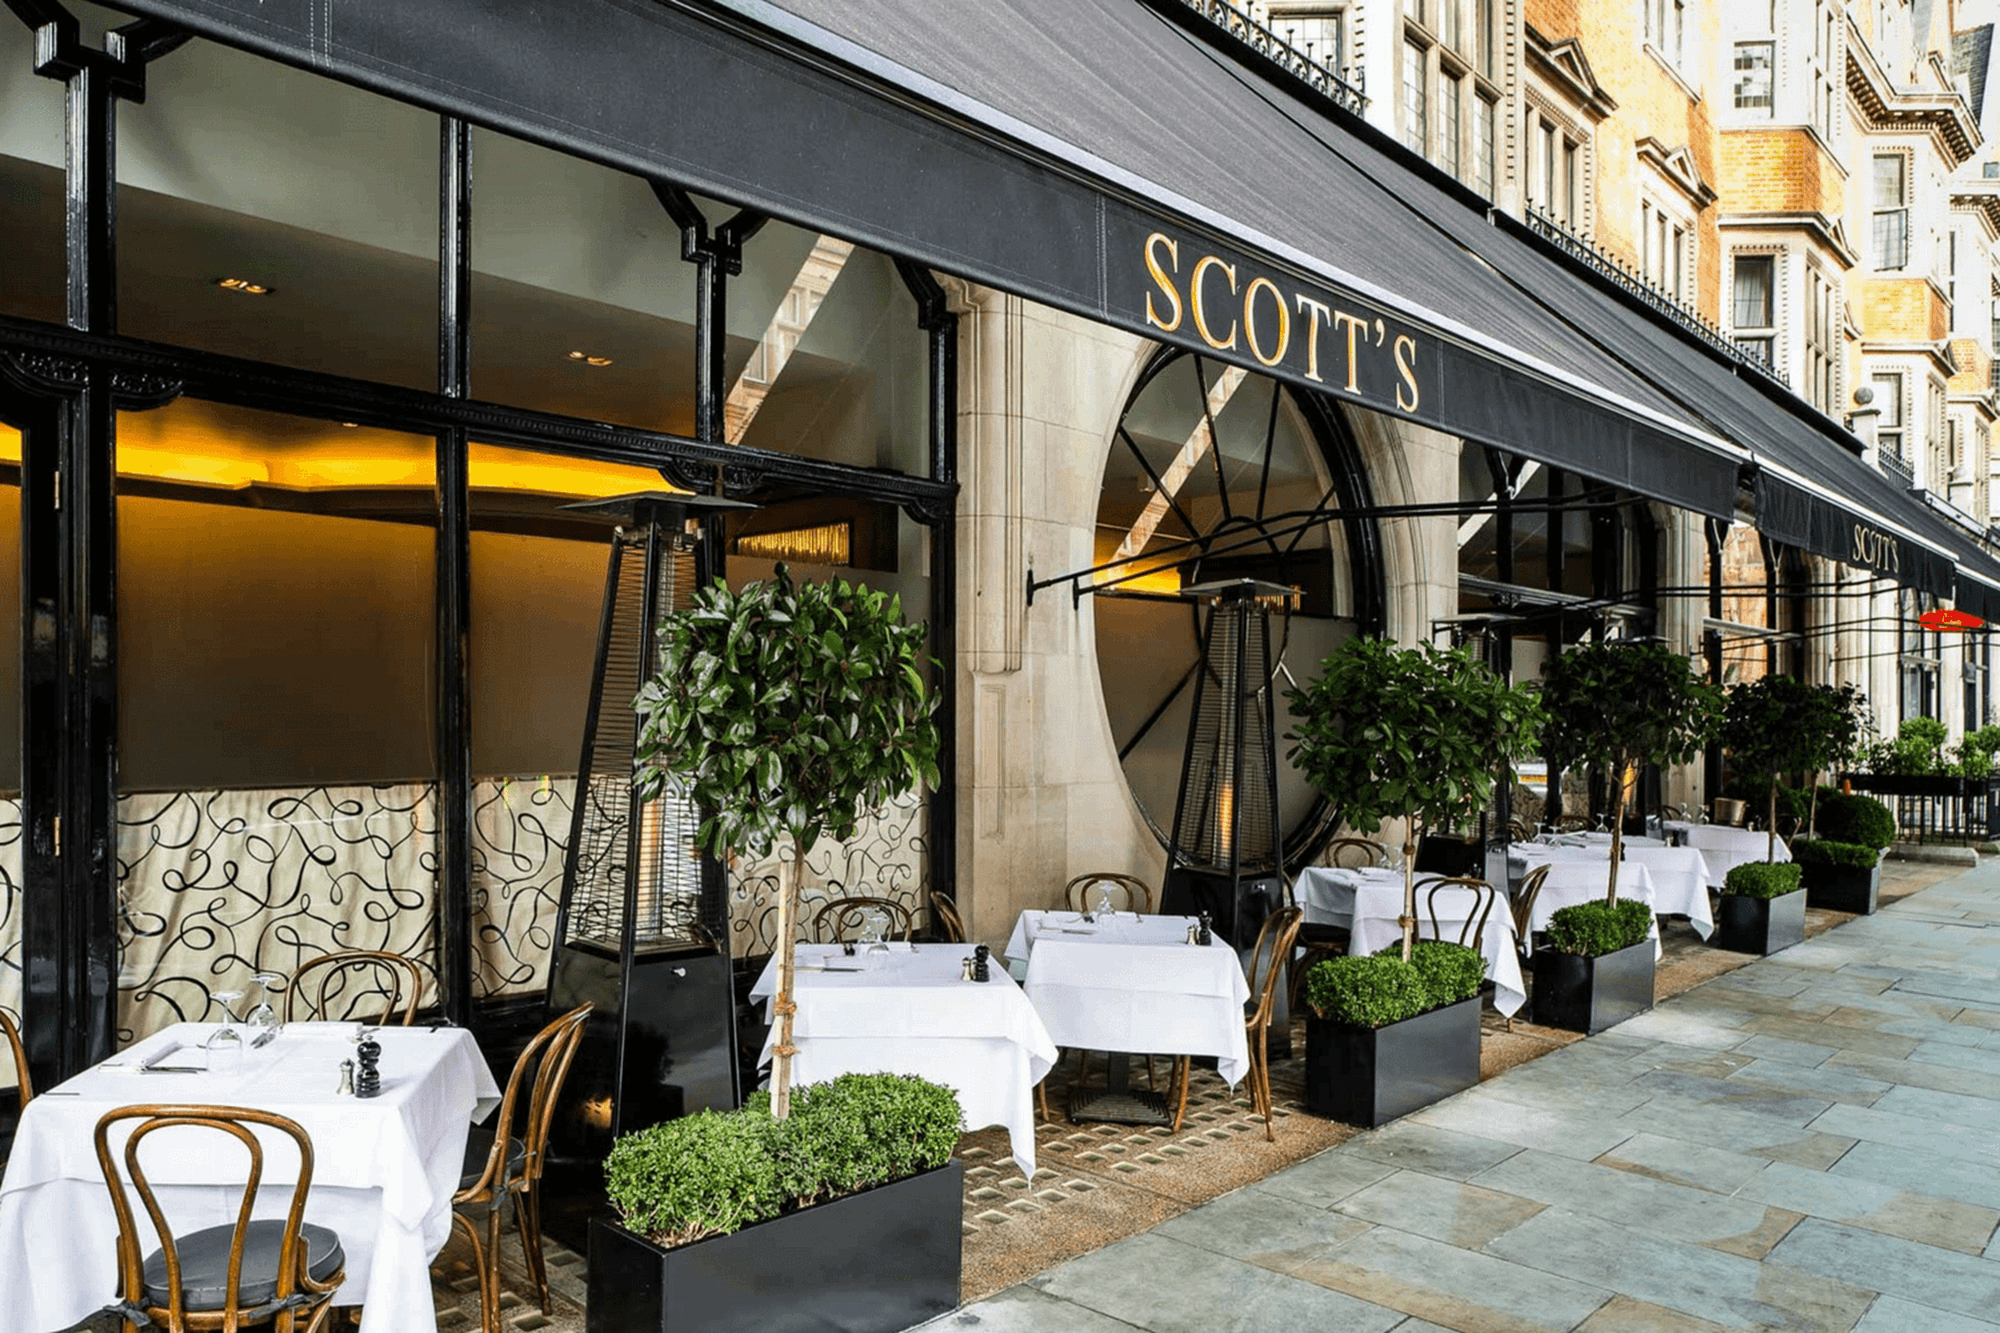 Scott's terrace is ideal for outside dining in London